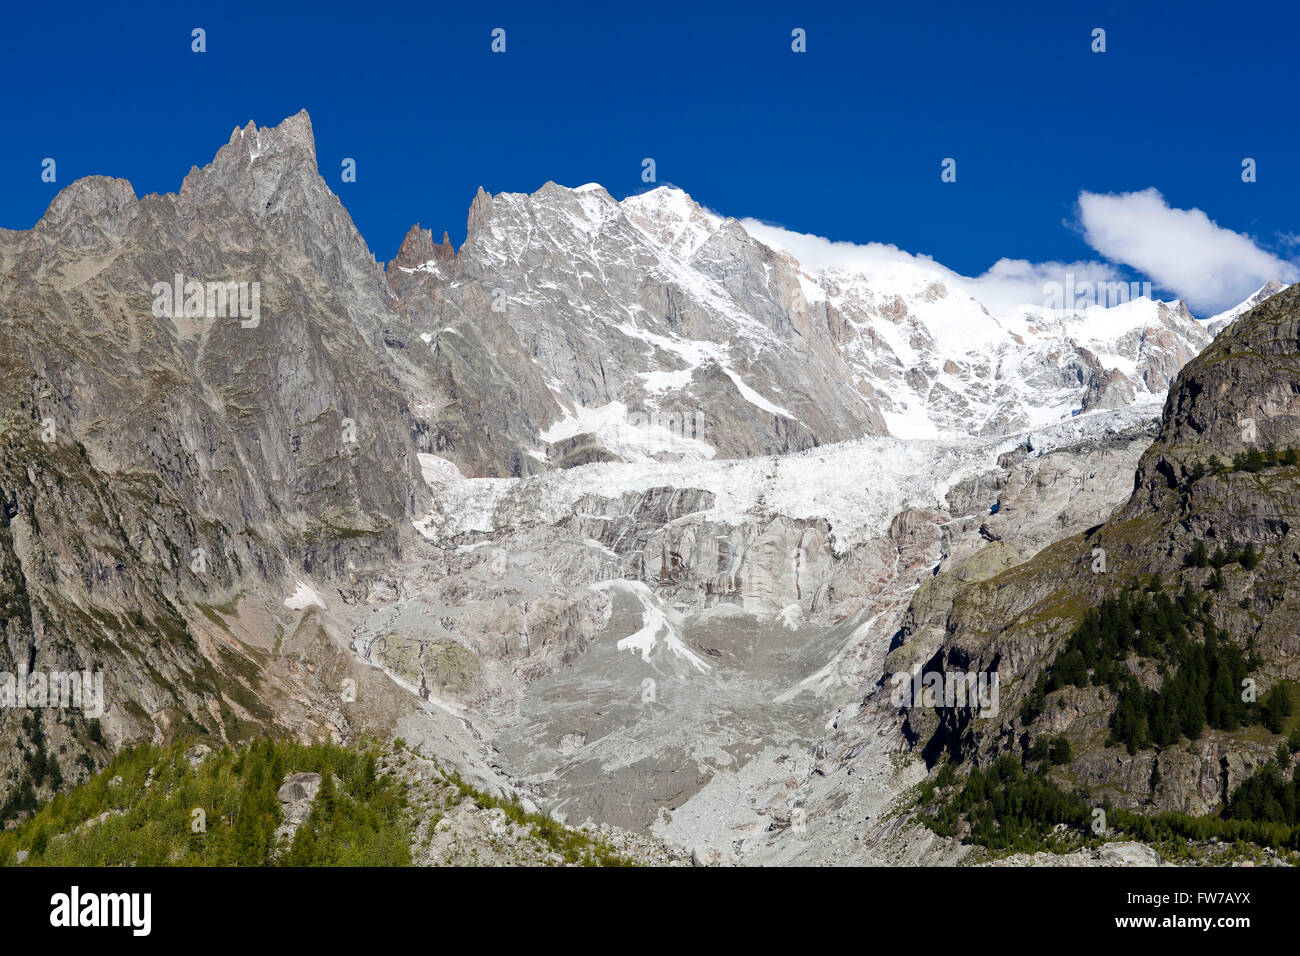 Monte Bianco Courmayeur Italy ice rock wall - Stock Image